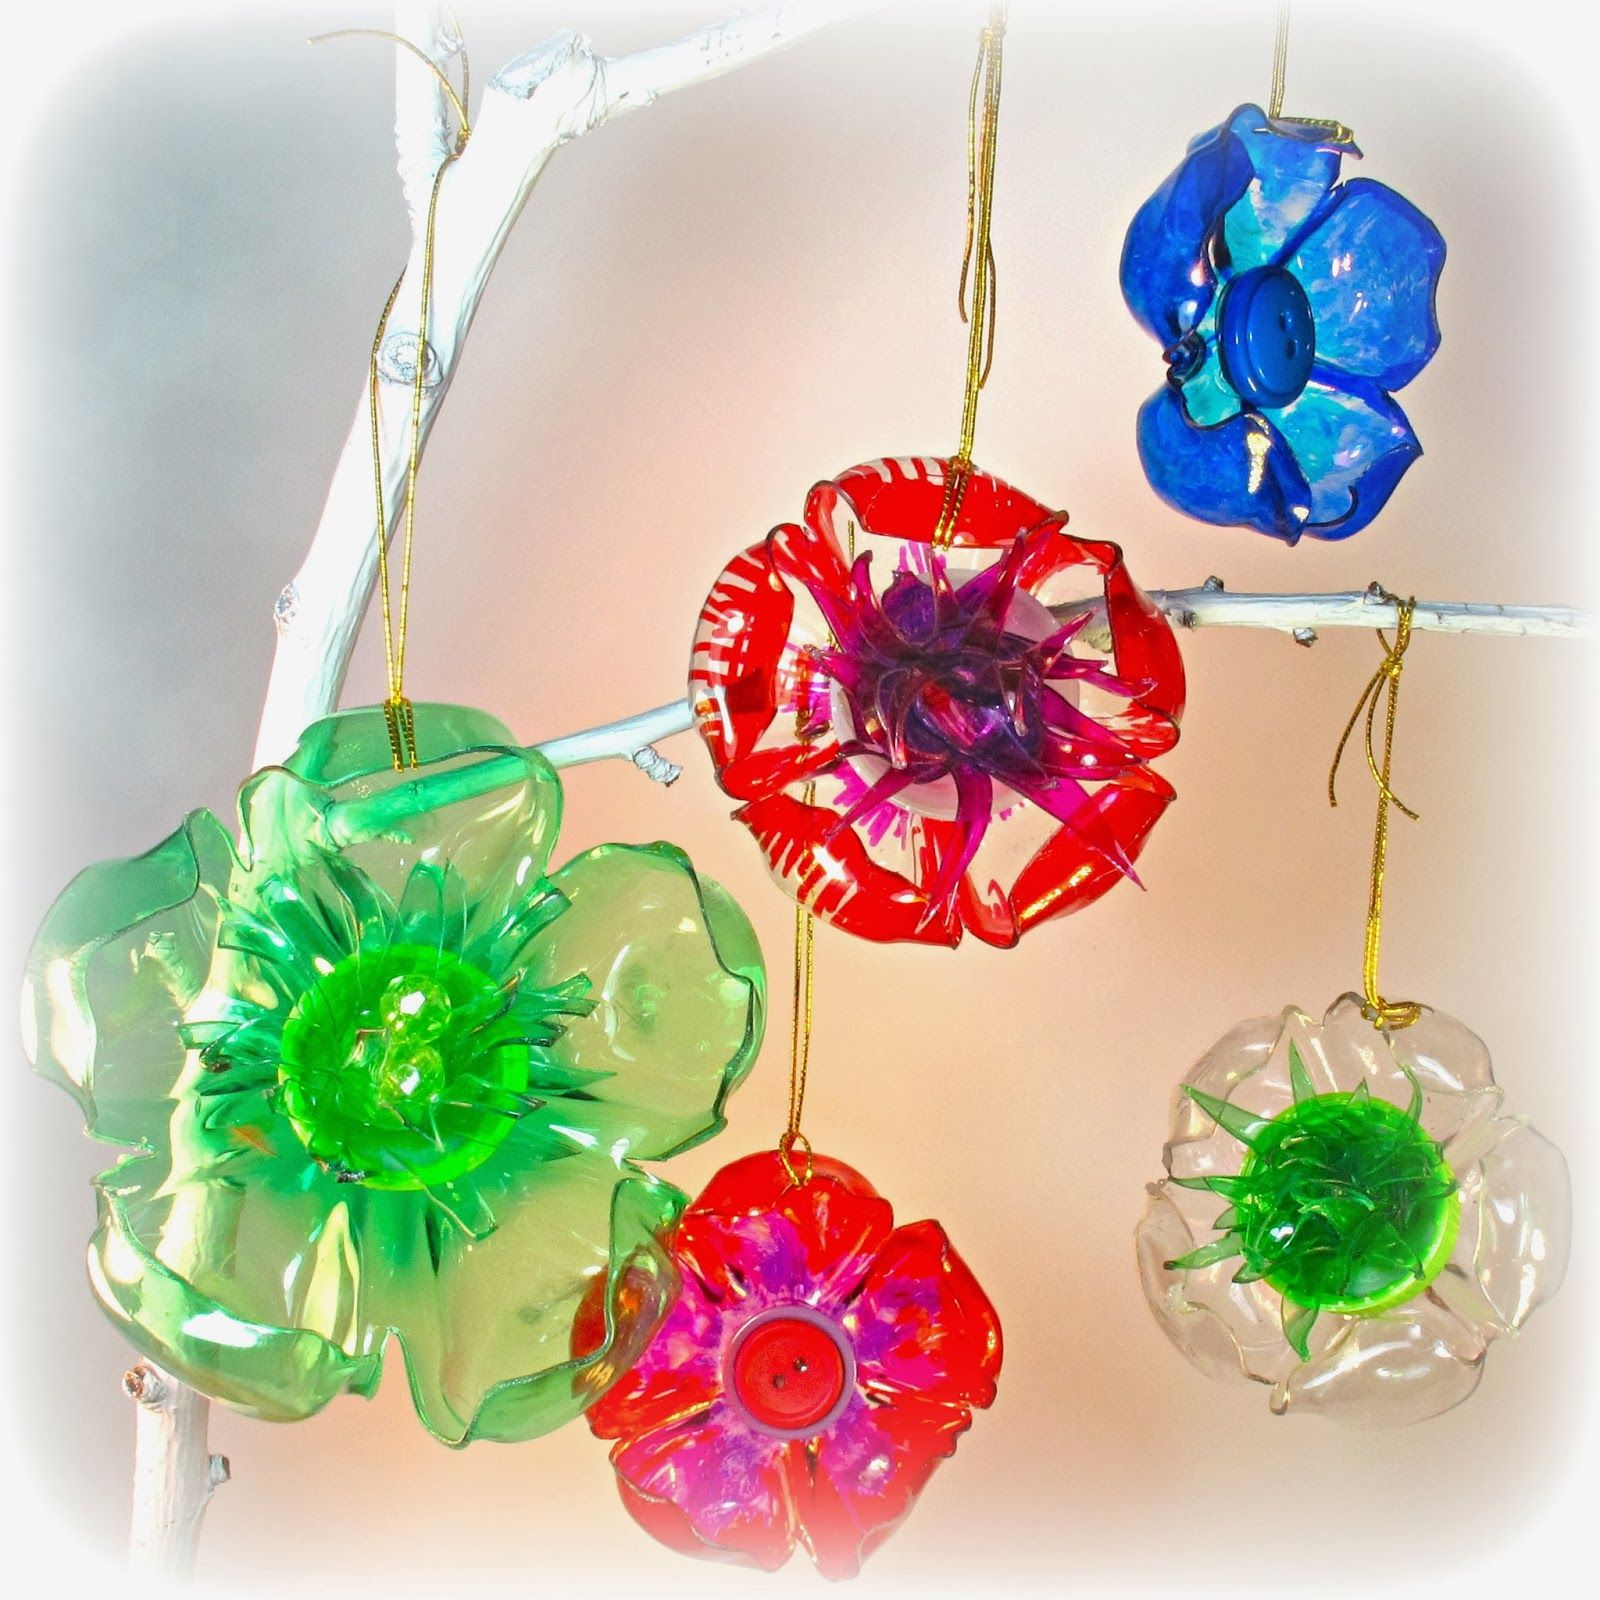 5 christmas decorations made with recycled materials - How To Make Diy Turtle Toys From Recycled Plastic Bottles Plastic Bottles Turtle And Bottle